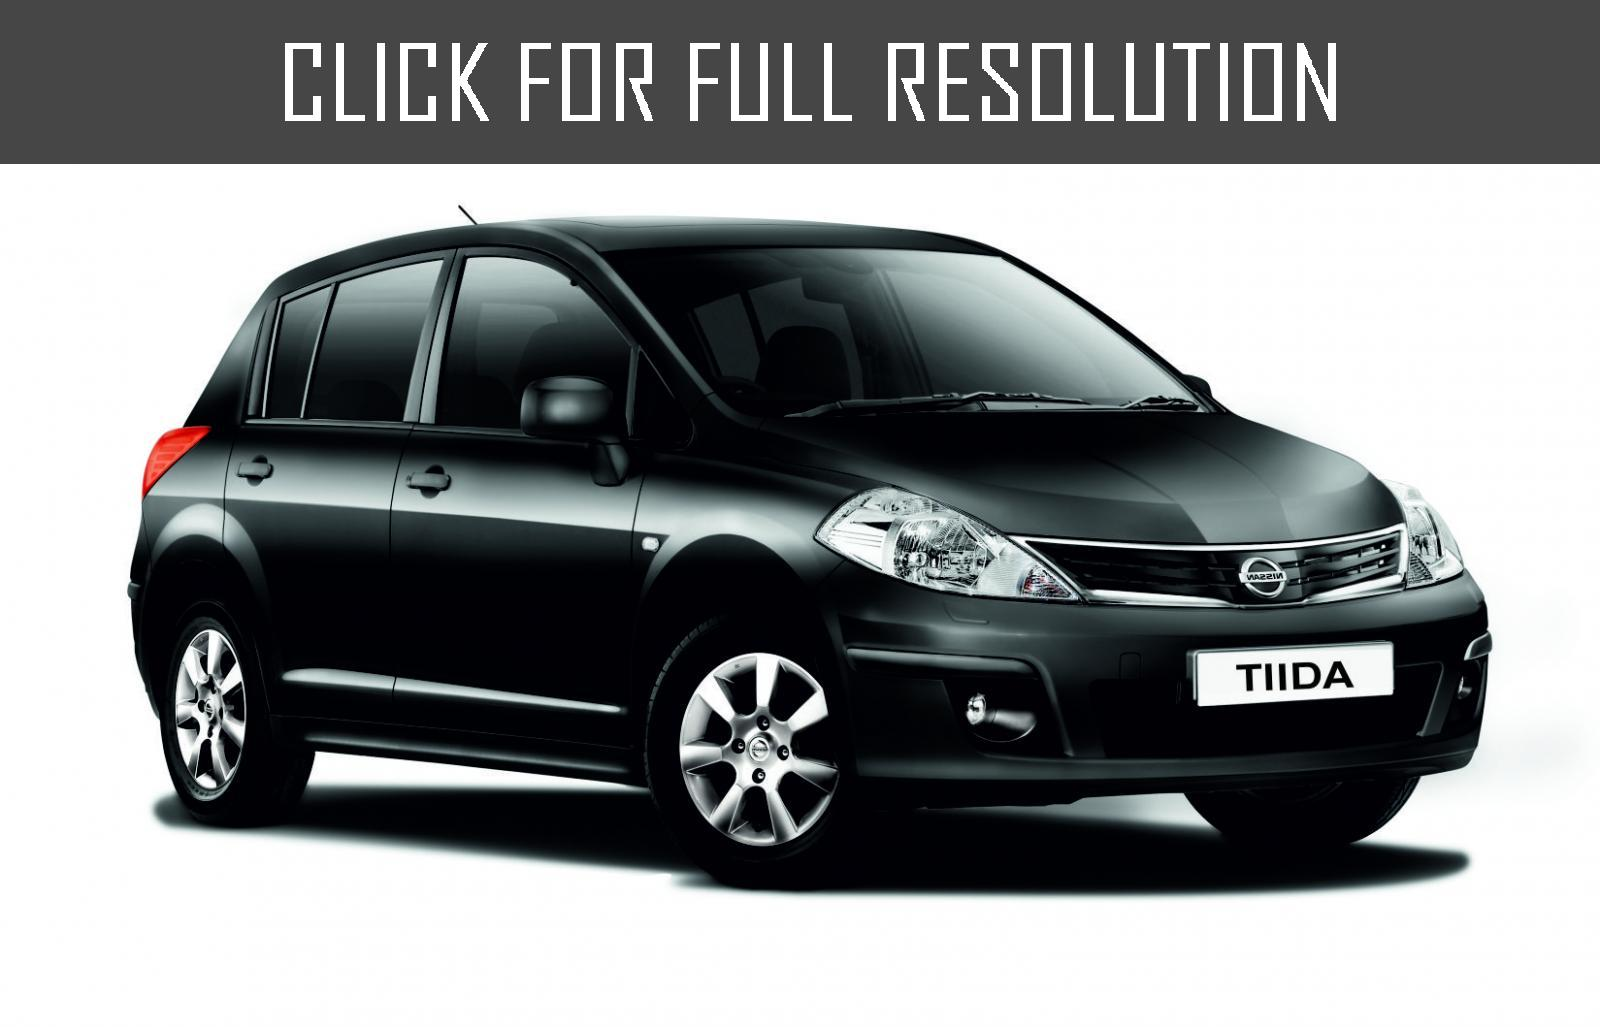 2017 Nissan Tiida photo - 2